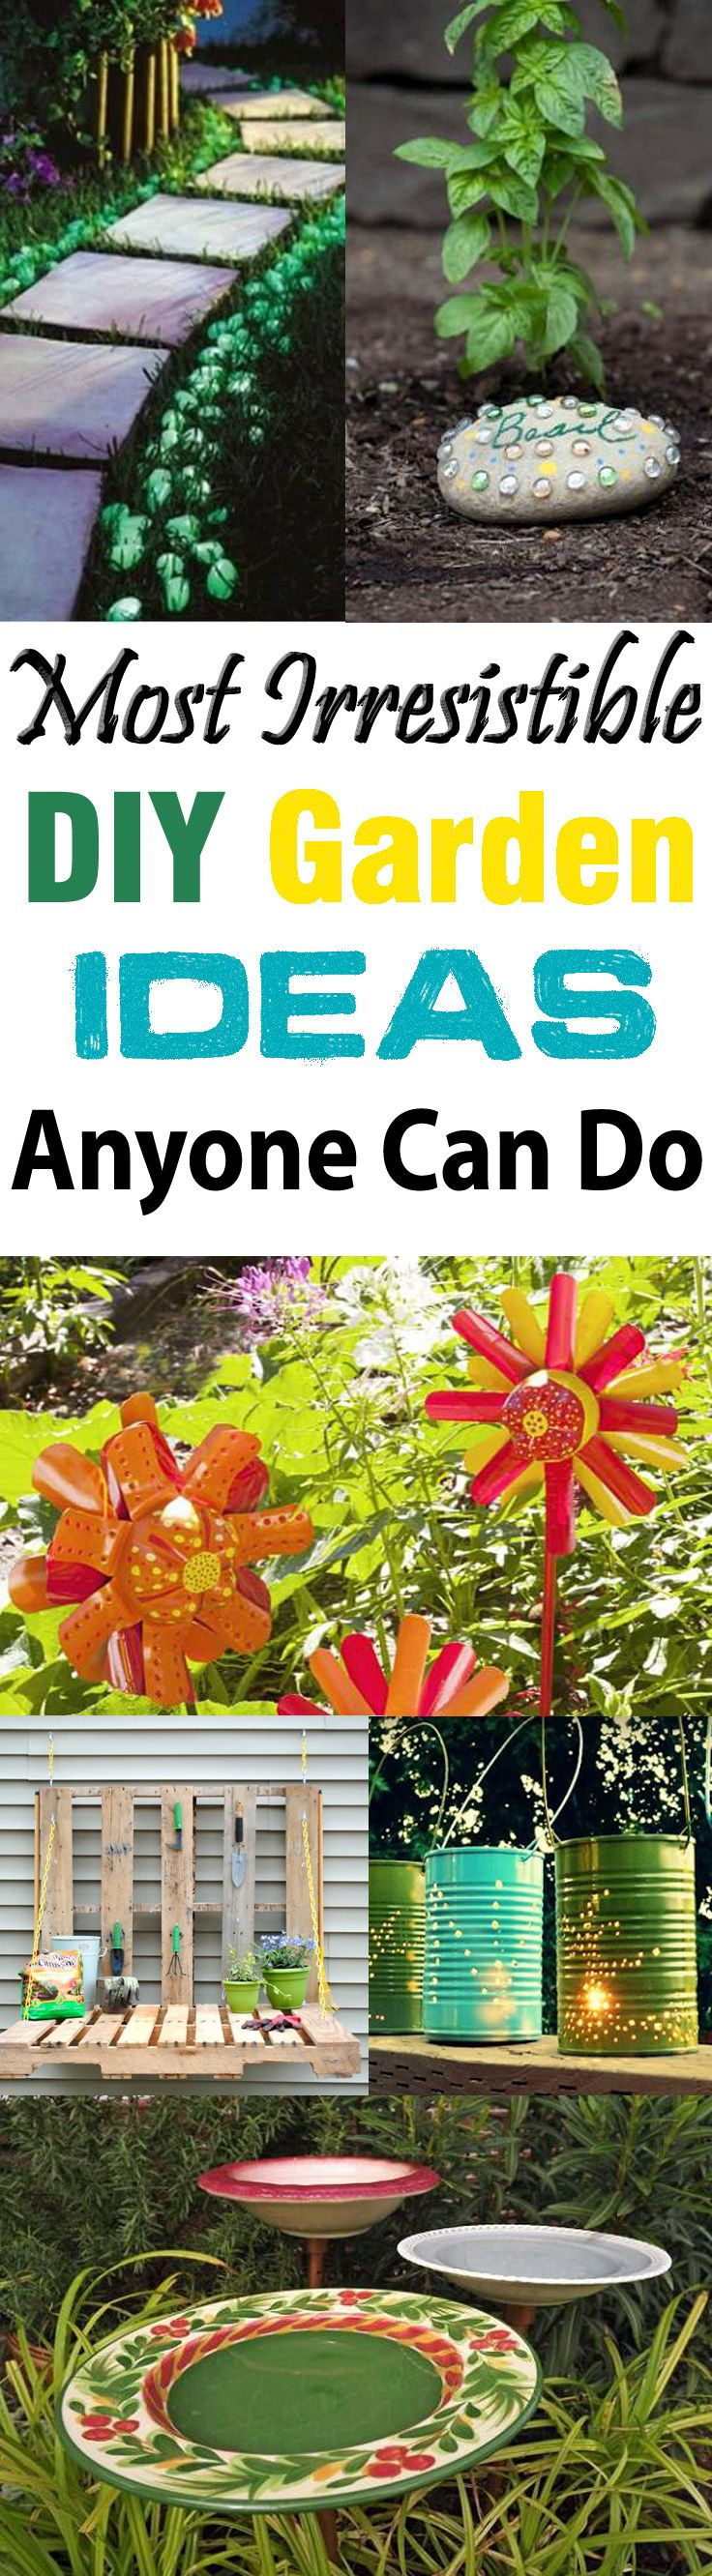 Most Irresistible DIY Garden Ideas Anyone Can Do